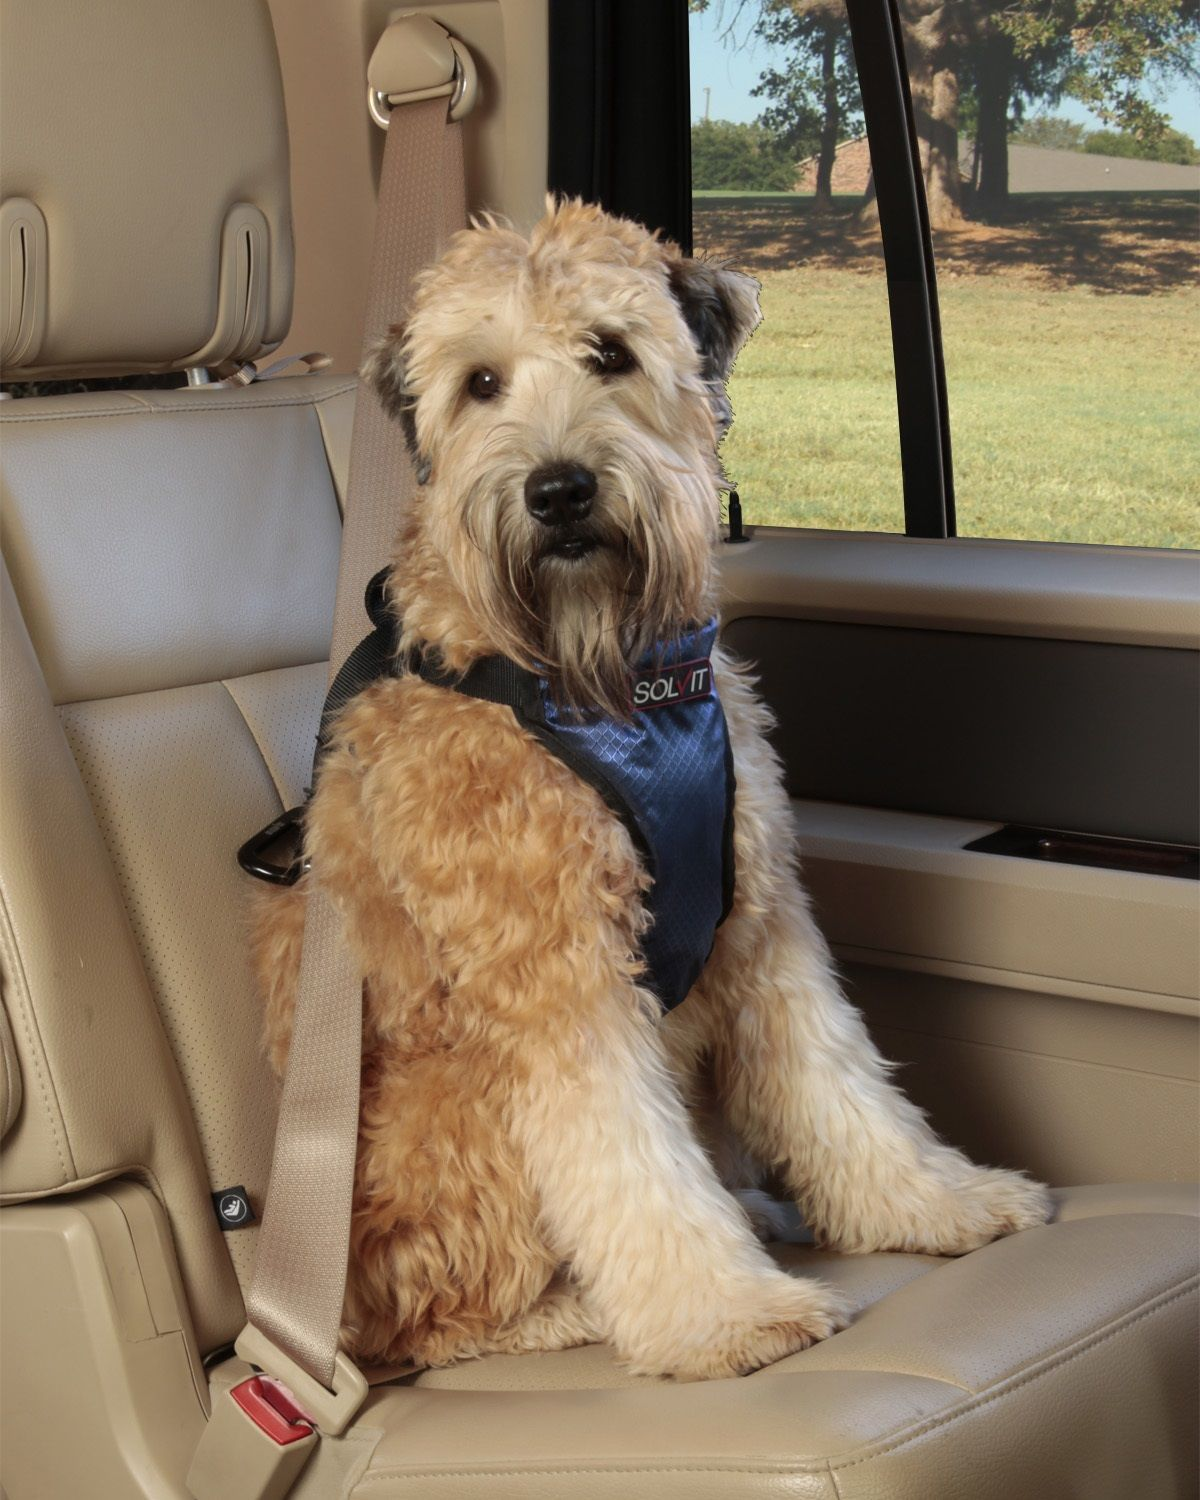 Dog Car Restraint and Harness | Pet Safety Tips | Pinterest | Dogs